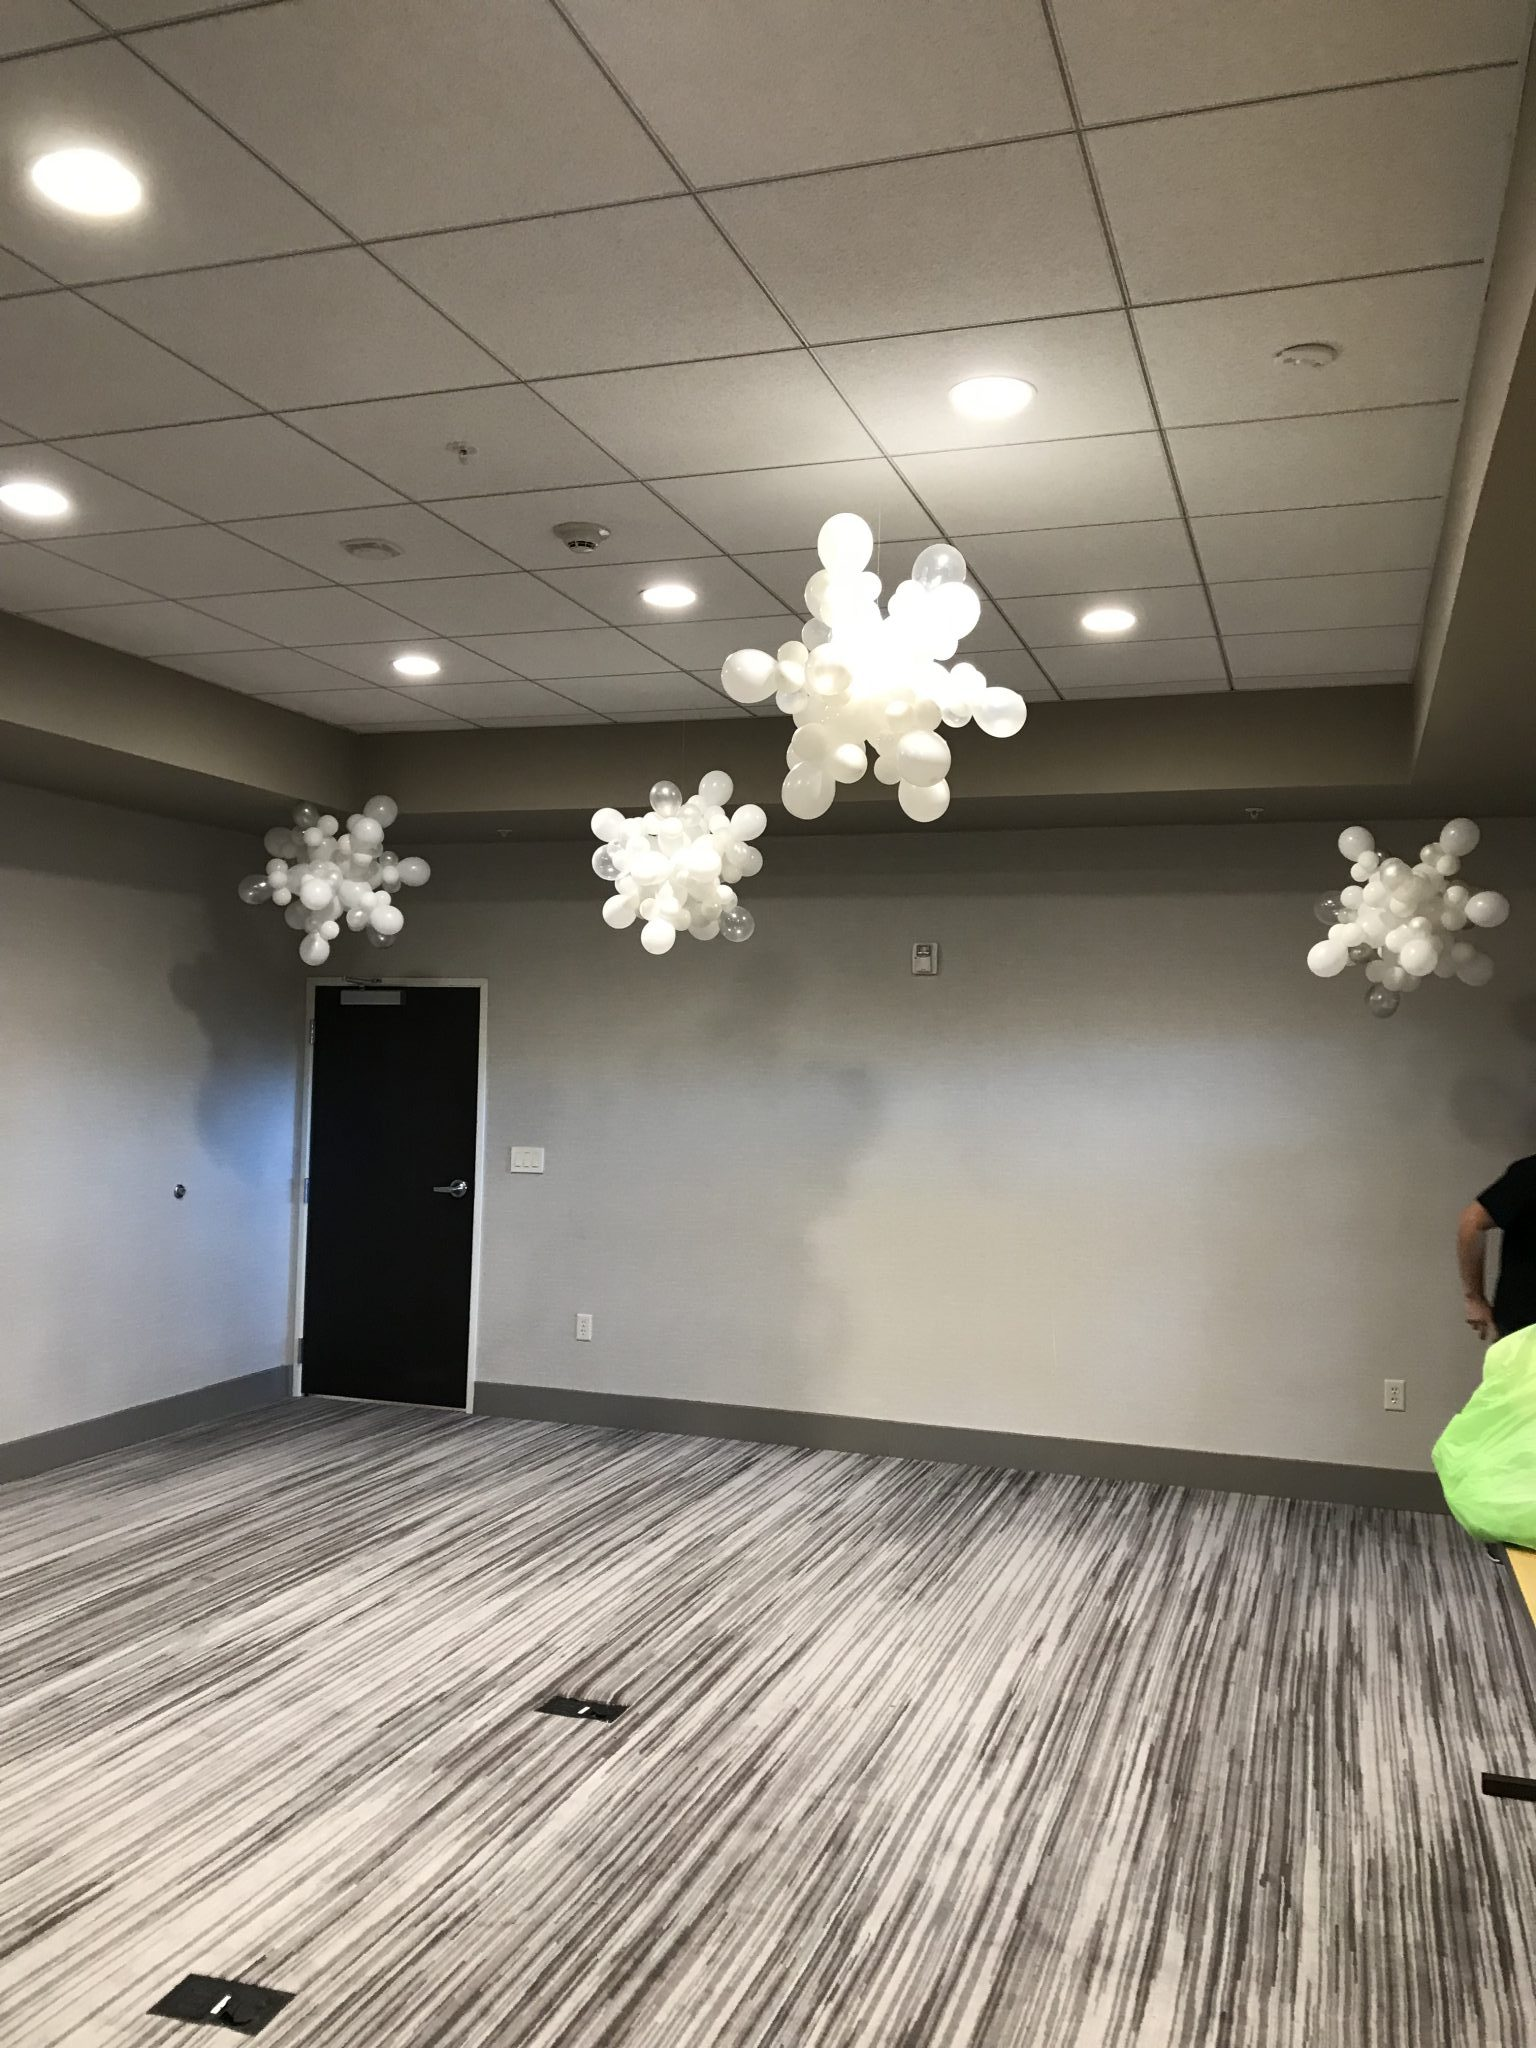 Balloon Snow Flakes